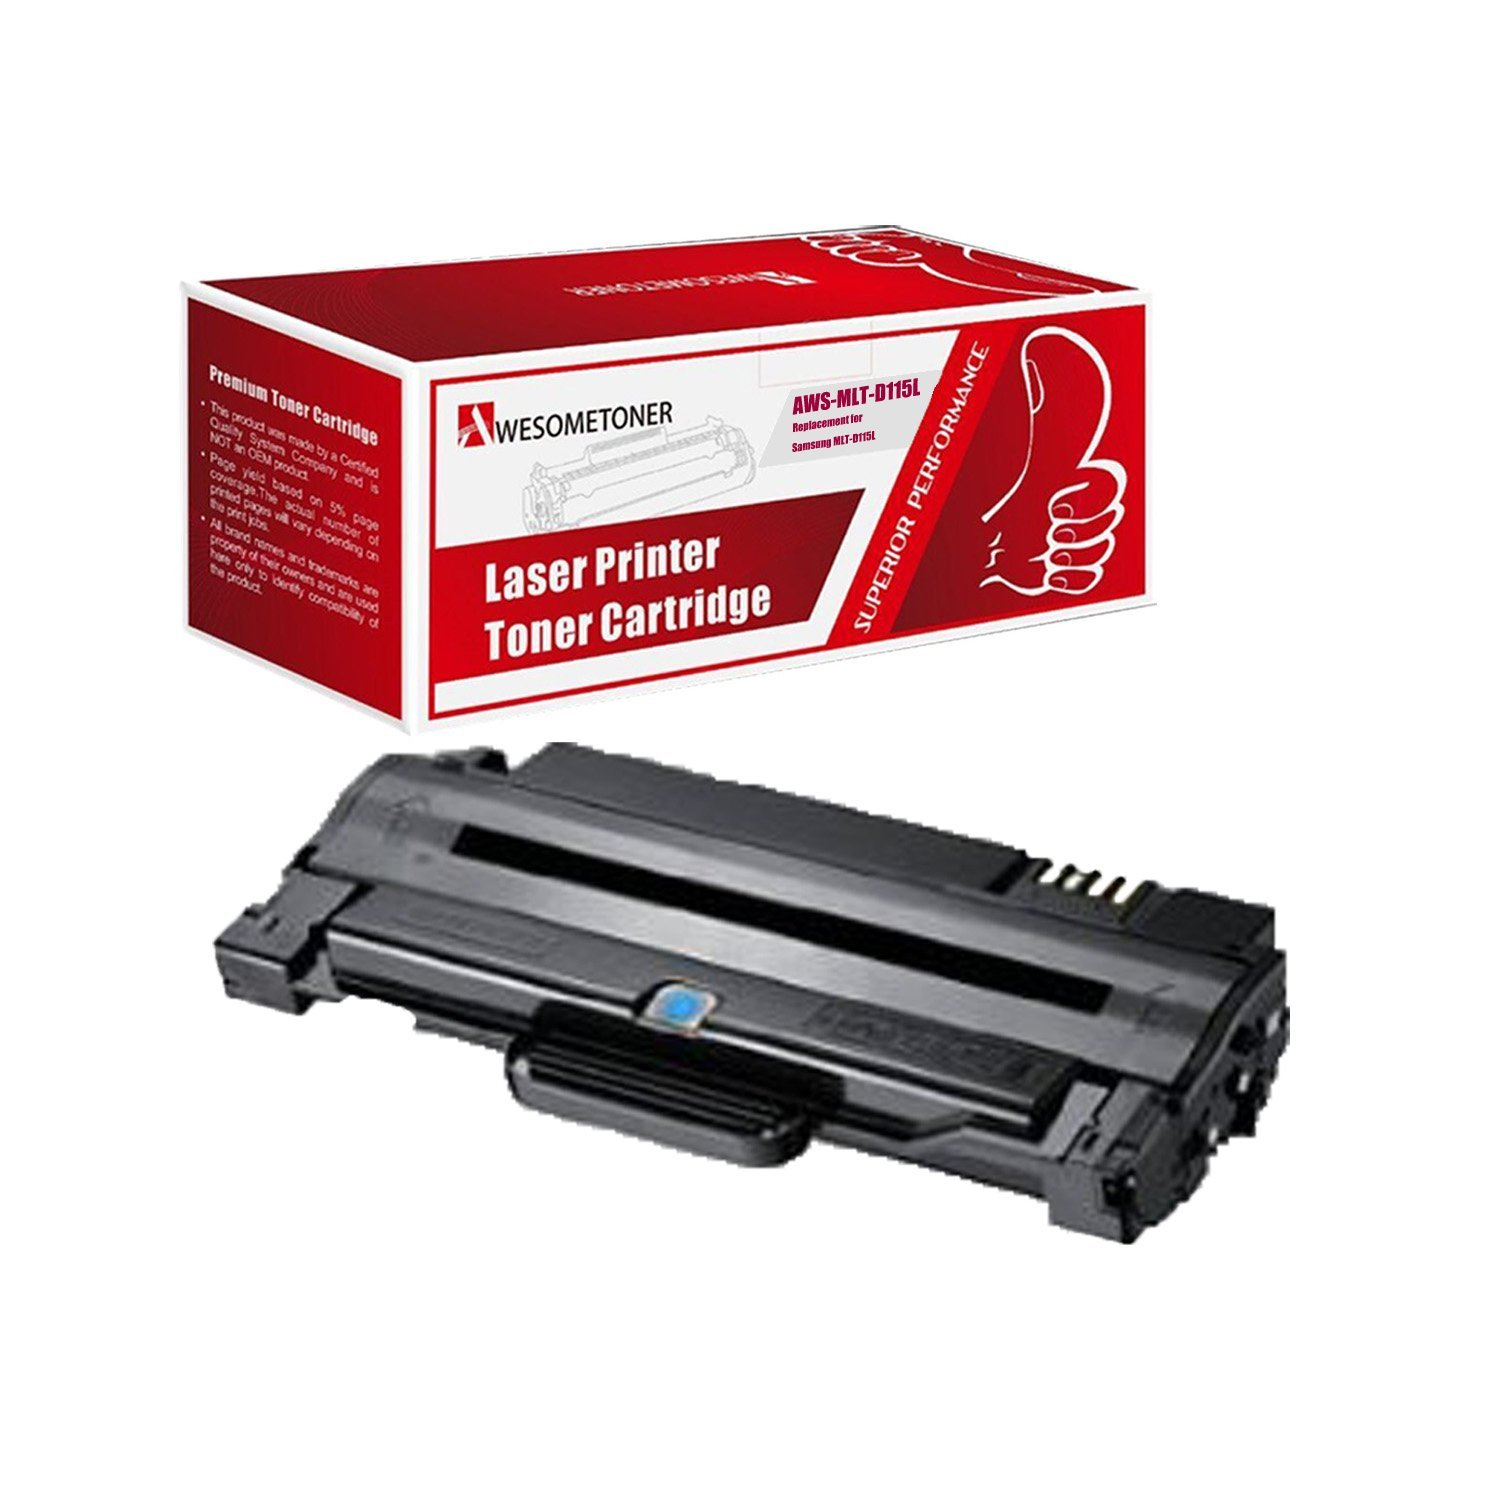 Xpress M2820 SL-M2830DW Replacement Use for SL-M2880FW InkClub 2PK Compatible MLT-D115L Black High Yield Laser Toner Cartridge Xpress M2670 Xpress M2870 Printers Xpress M2620